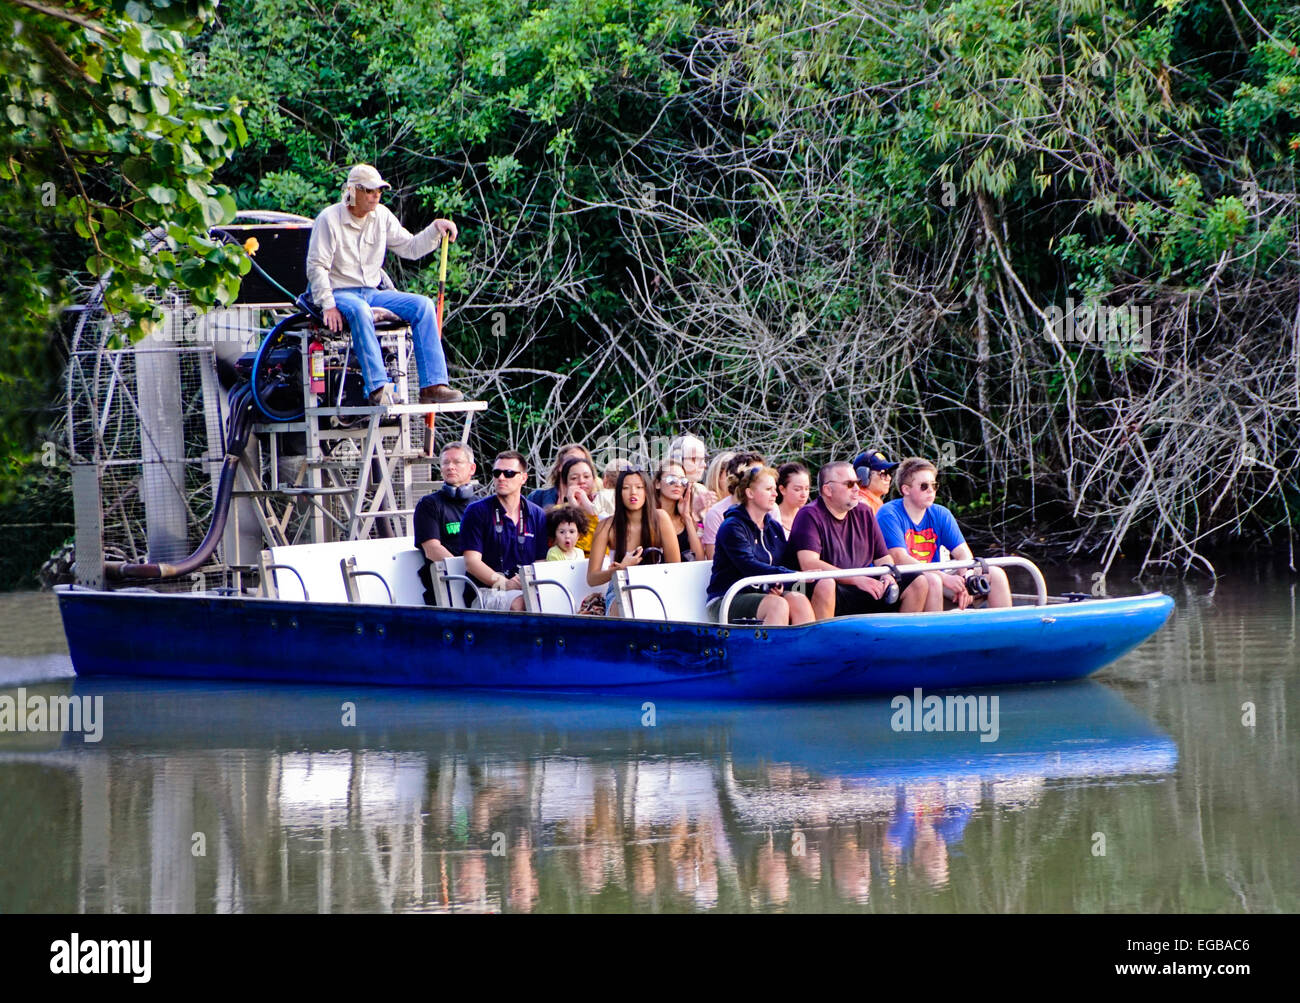 Airboat in Florida Everglades - Stock Image